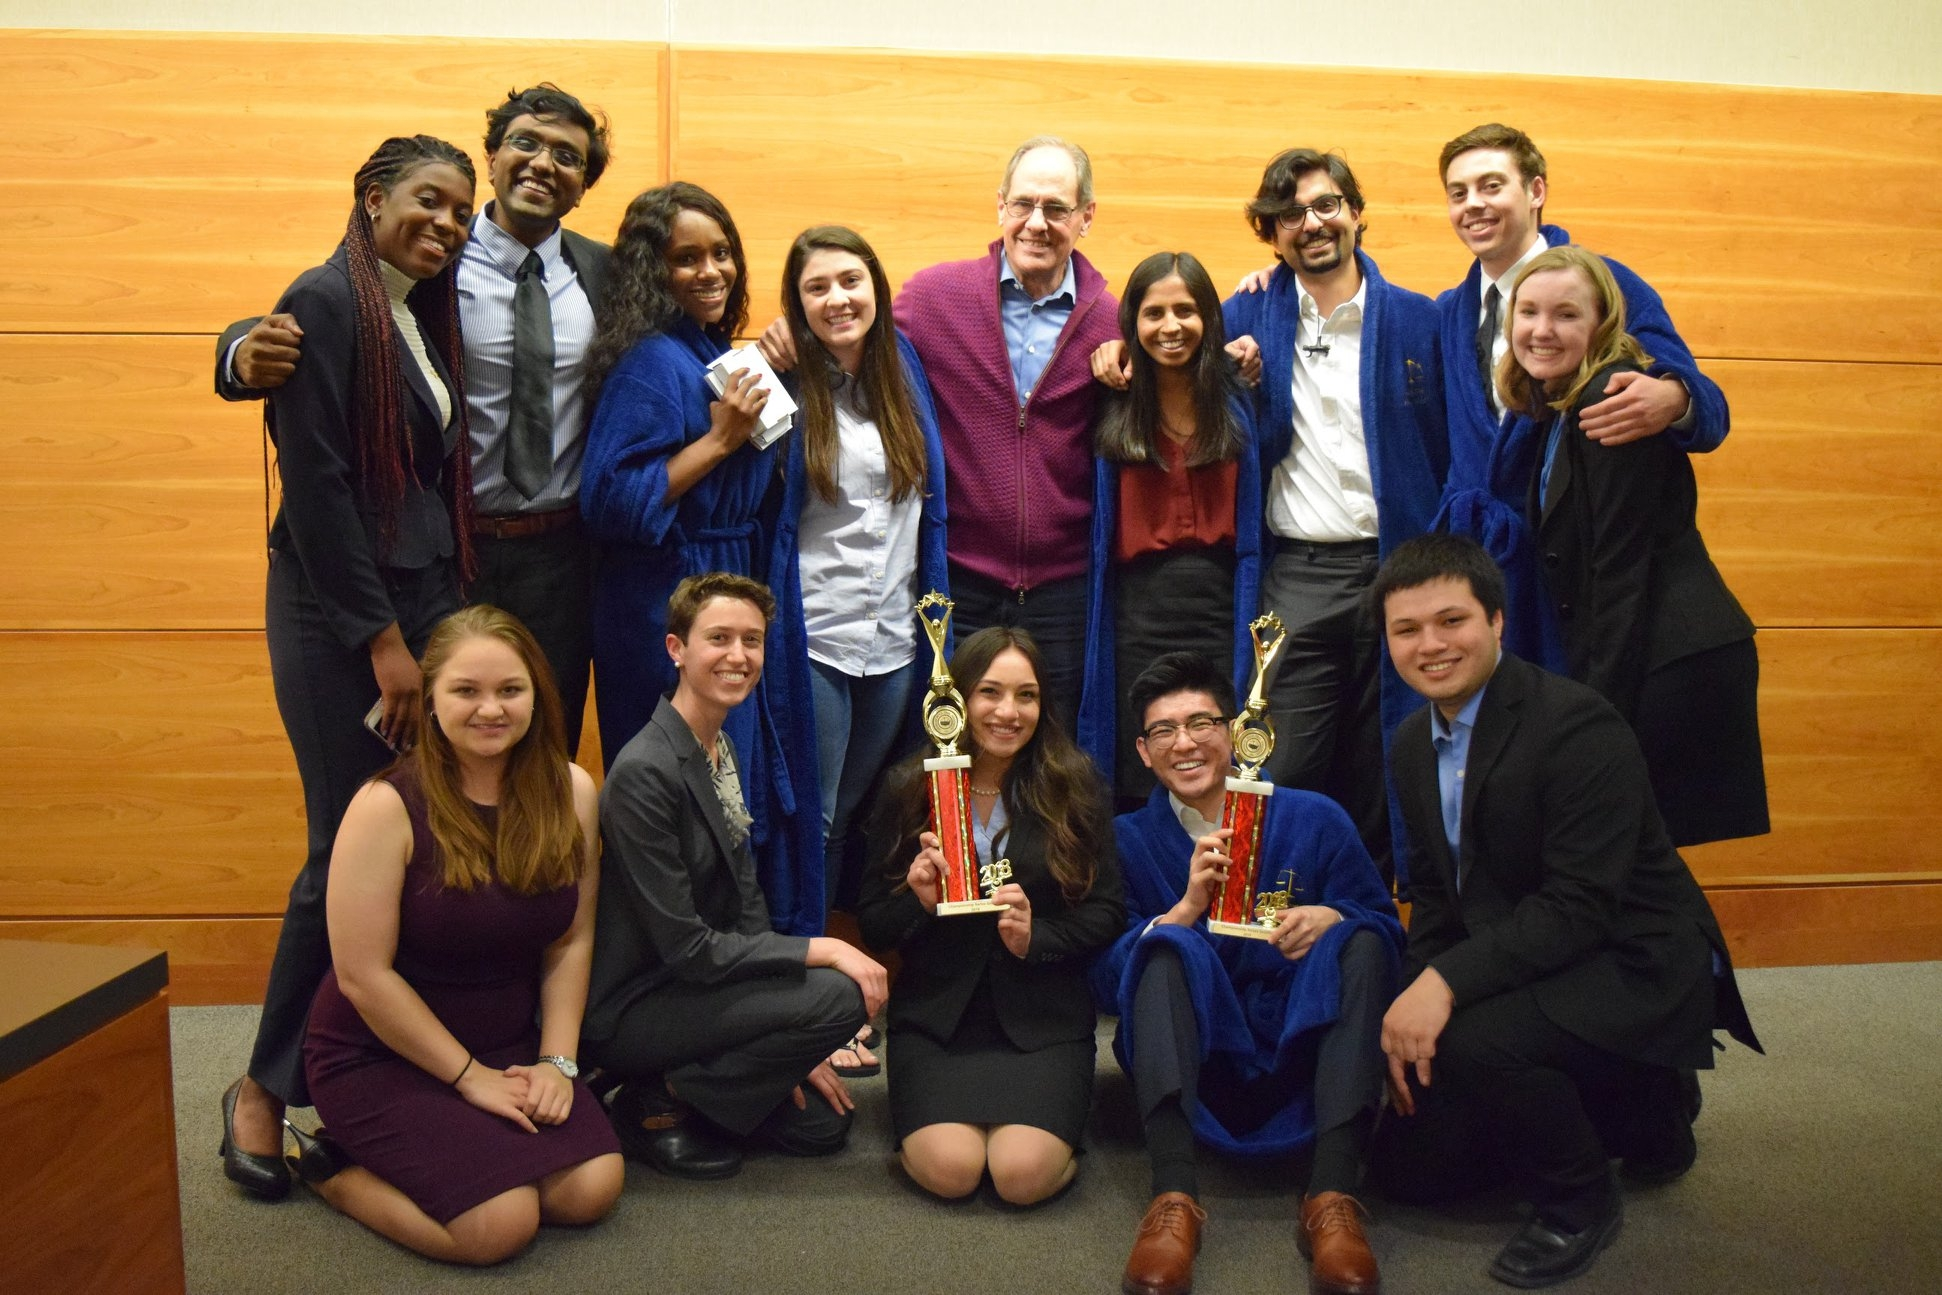 Seattle Regionals (2/10 - 2/11) - 2 bids to ORCS as the Golden Bears win it all! Berkeley A and C Blue won 1st and 2nd place, respectively at the Seattle Regional Tournament, one of our favorite tournament venues! A team swept the tournament with a record of 8-0 and C Blue earned a record of 6-1-1. On top of all that, A Team won Honorable Mention for the Spirit of AMTA, recognizing our true sportsmanship in mock trial. And don't forget about our individual award winners! Give it up for...Key'Toya Burrell, All-Regional Witness with 17/20 ranksKey'Toya Burrell, All-Regional Attorney with 19/20 ranksSmita Balaji, All-Regional Attorney with 19/20 ranksThanks to the University of Washington for a great experience!